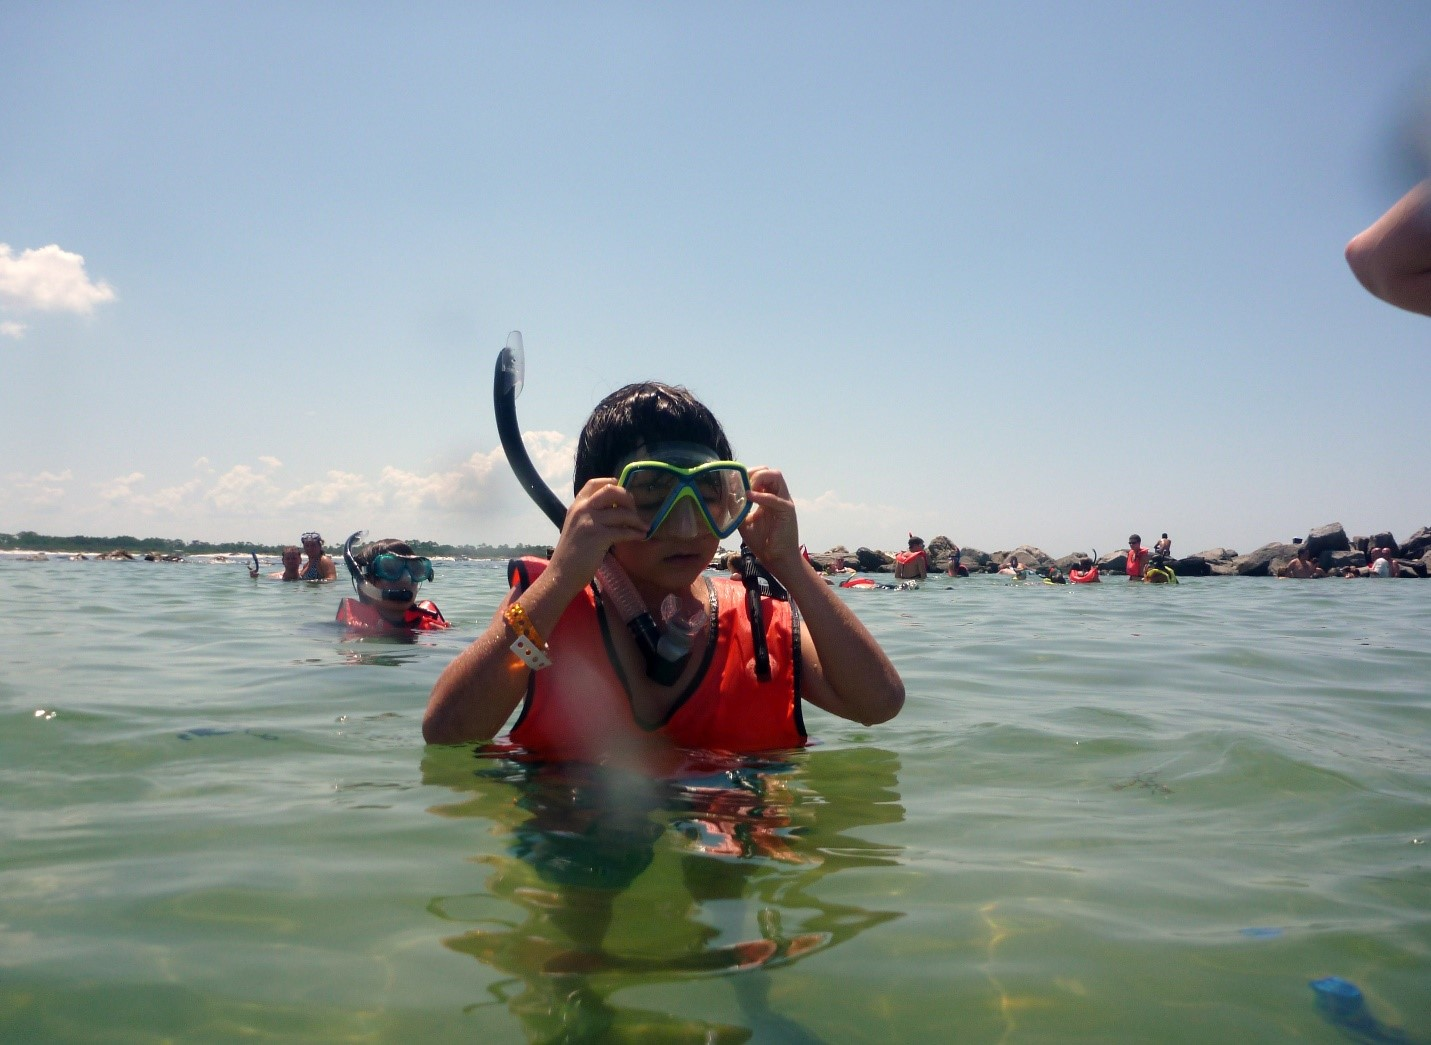 Snorkeling Safety at the Jetty